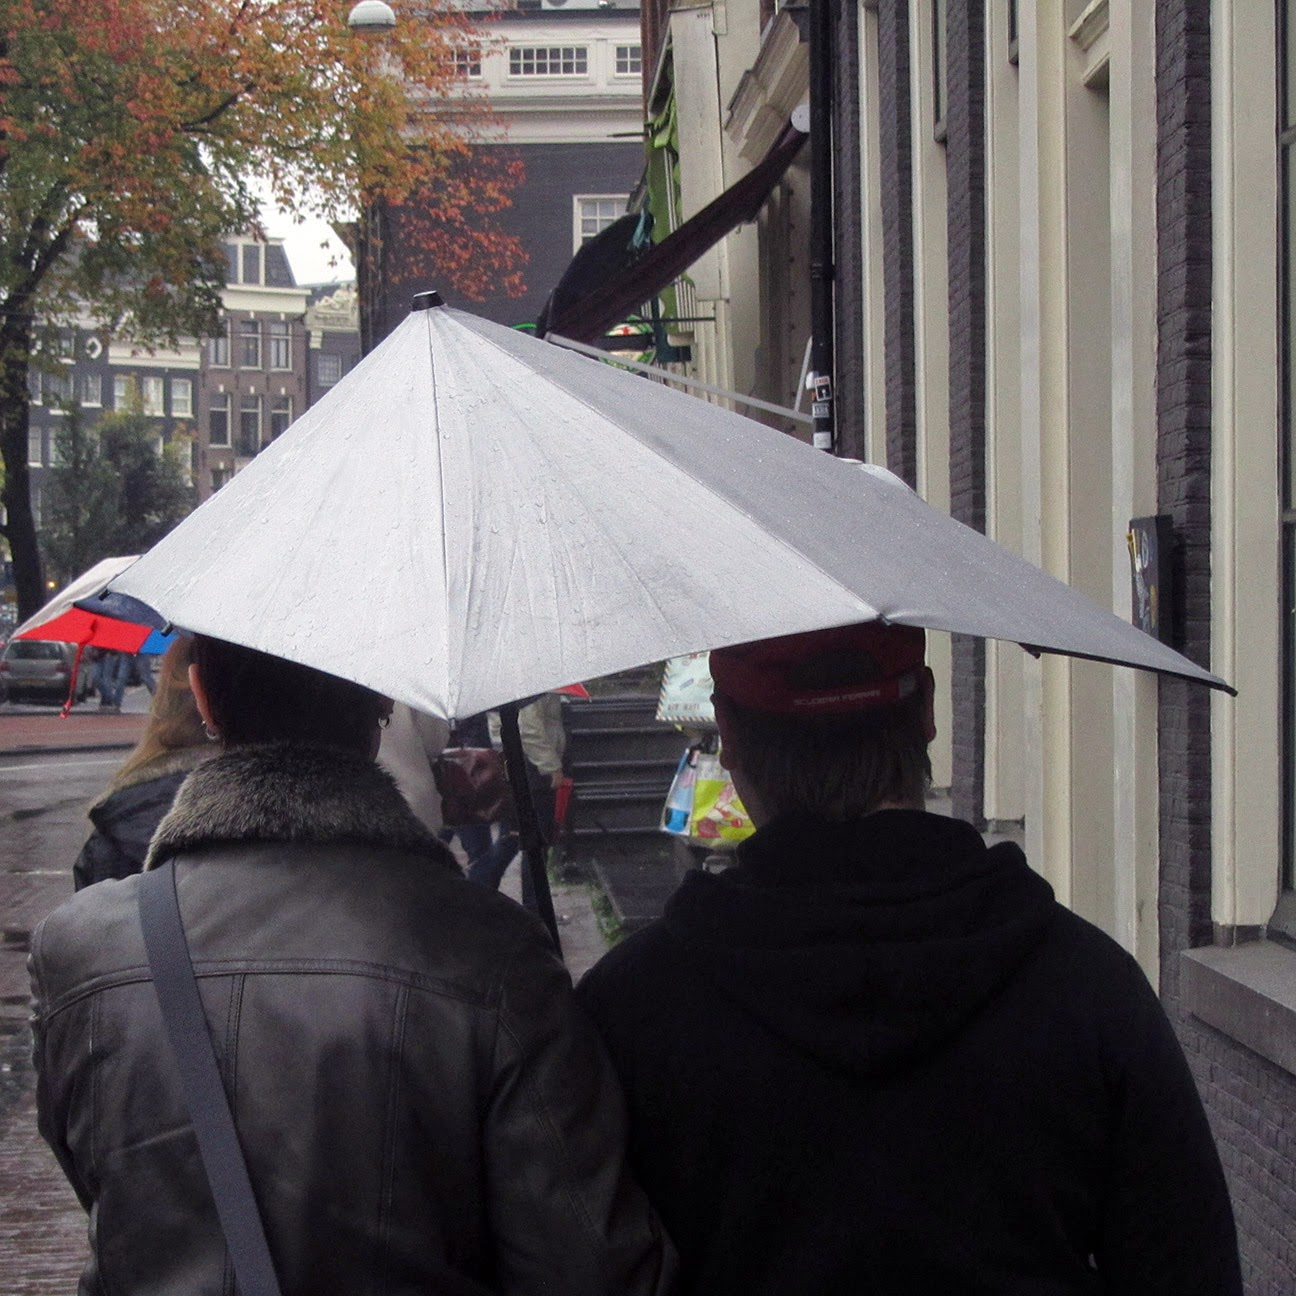 couple under a lopsided umbrella